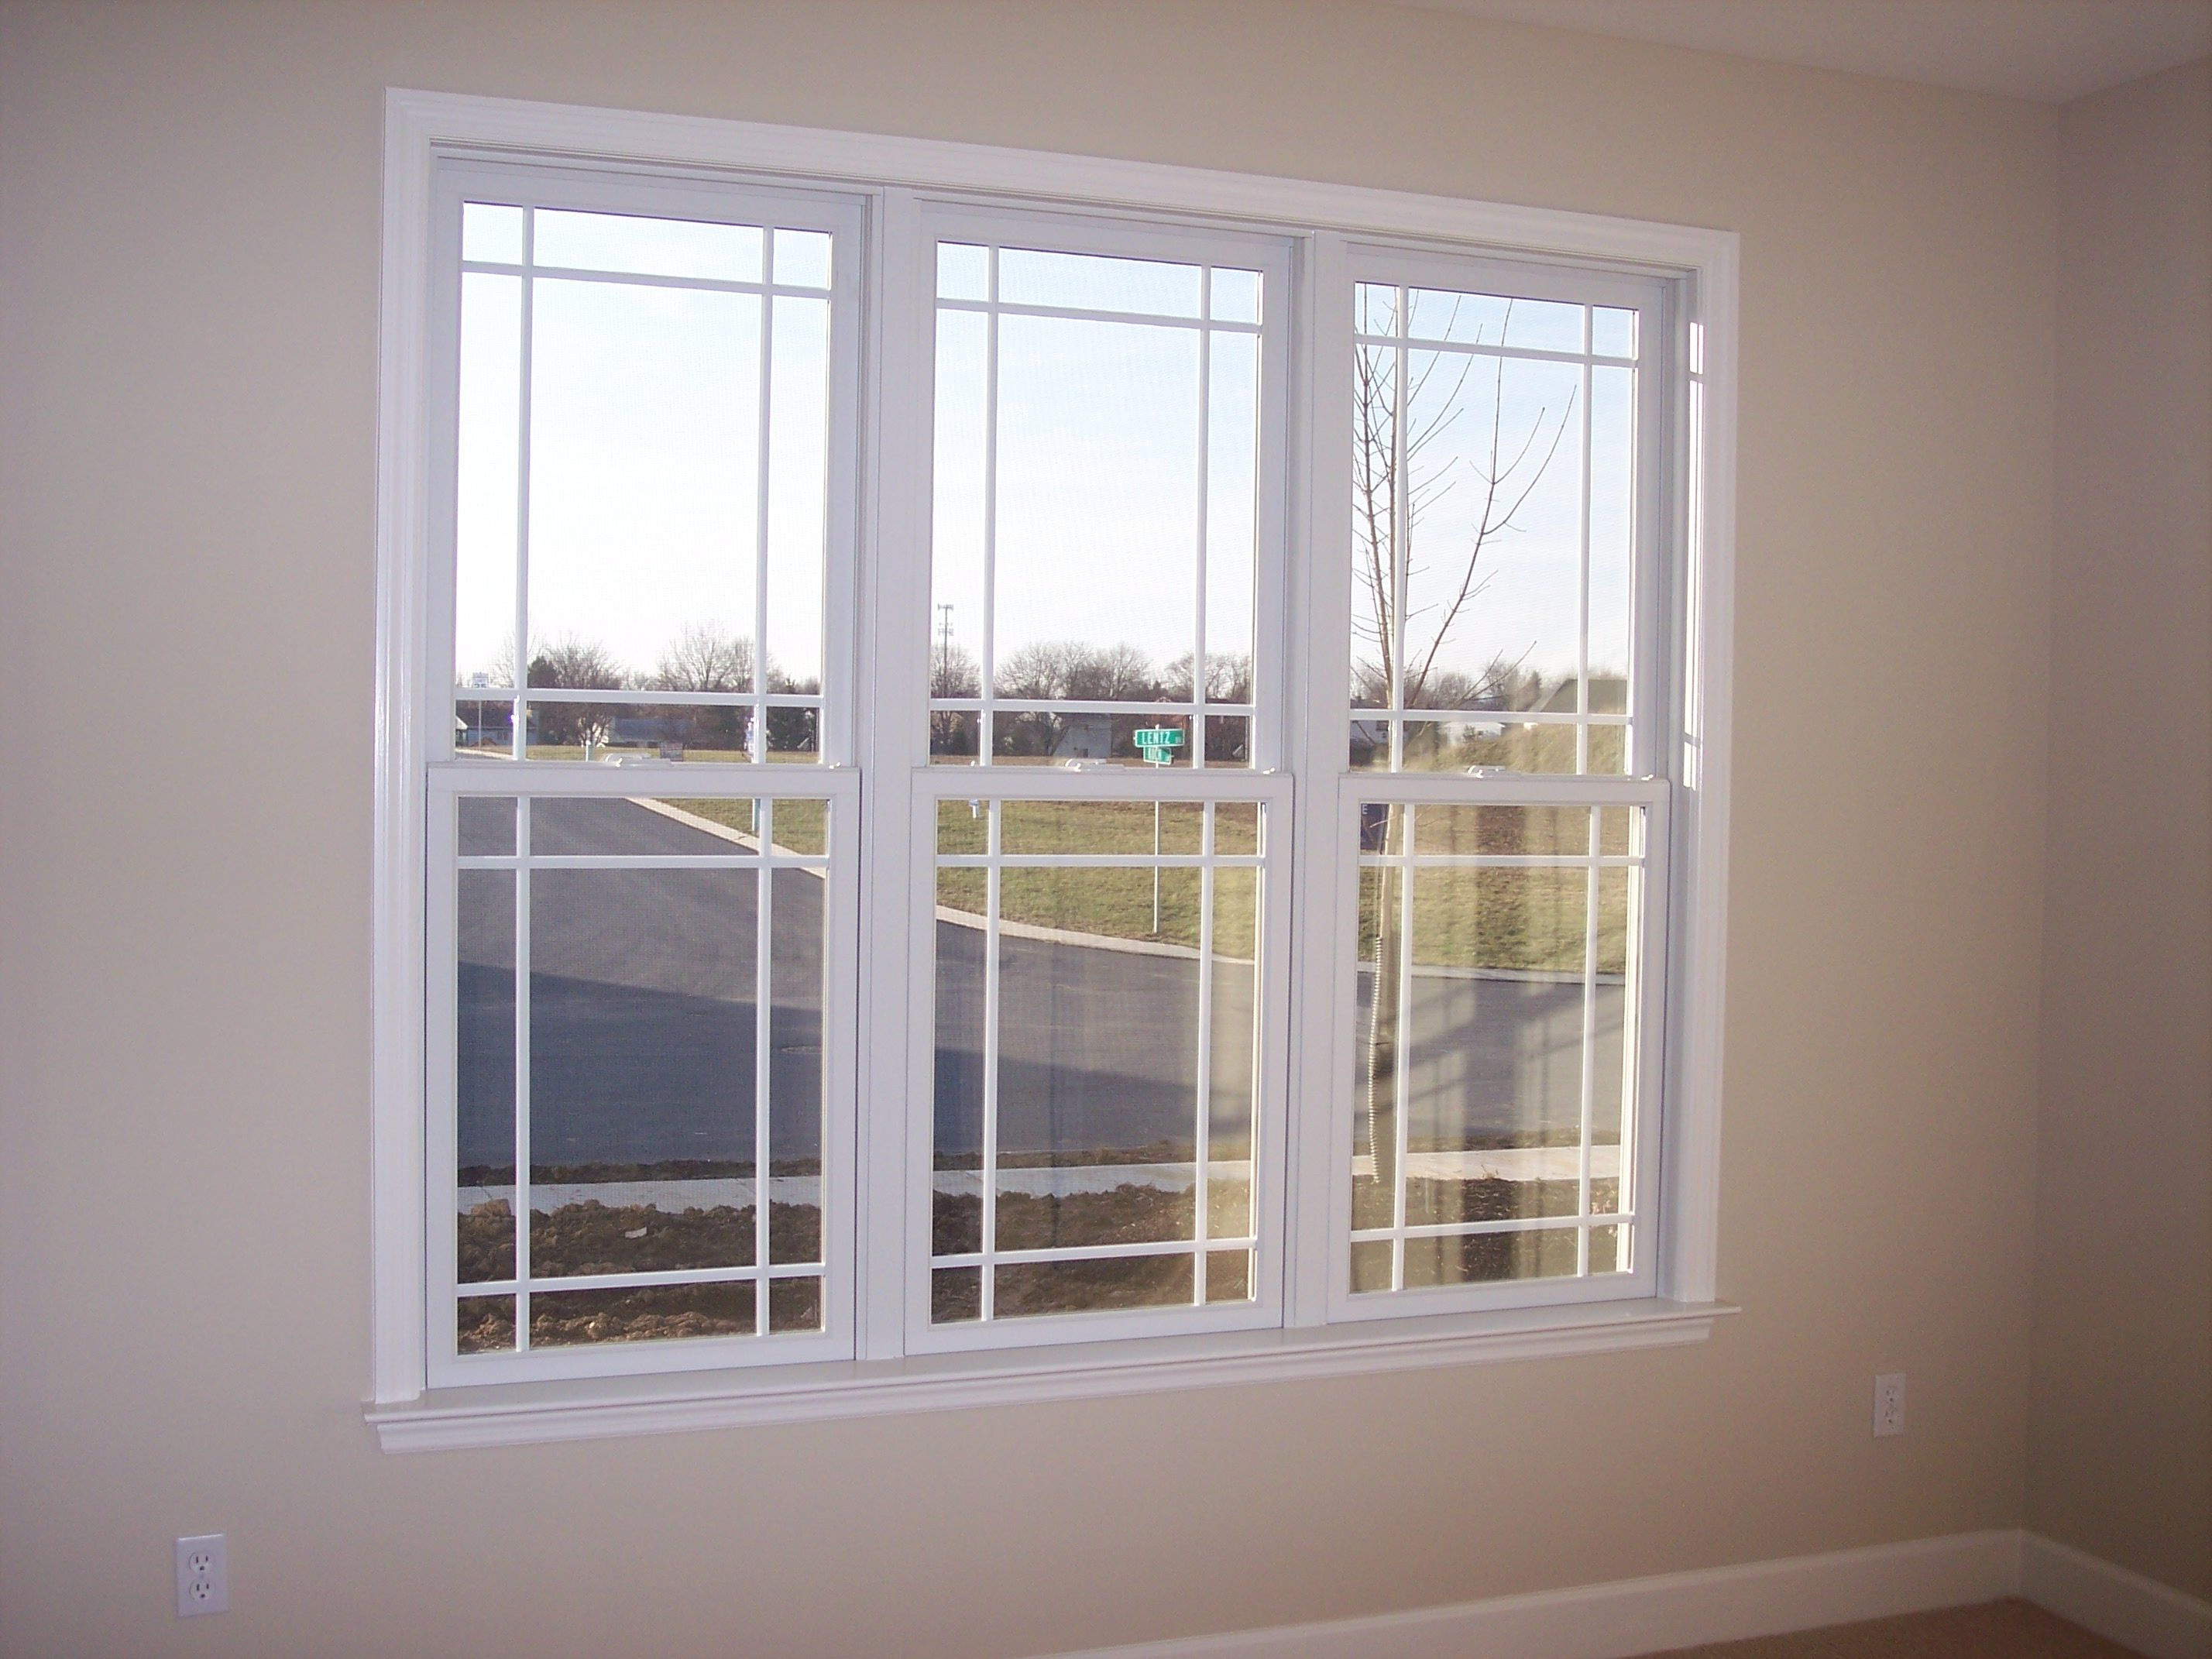 large windows | Window designs for homes window pictures Window designs for  homes .